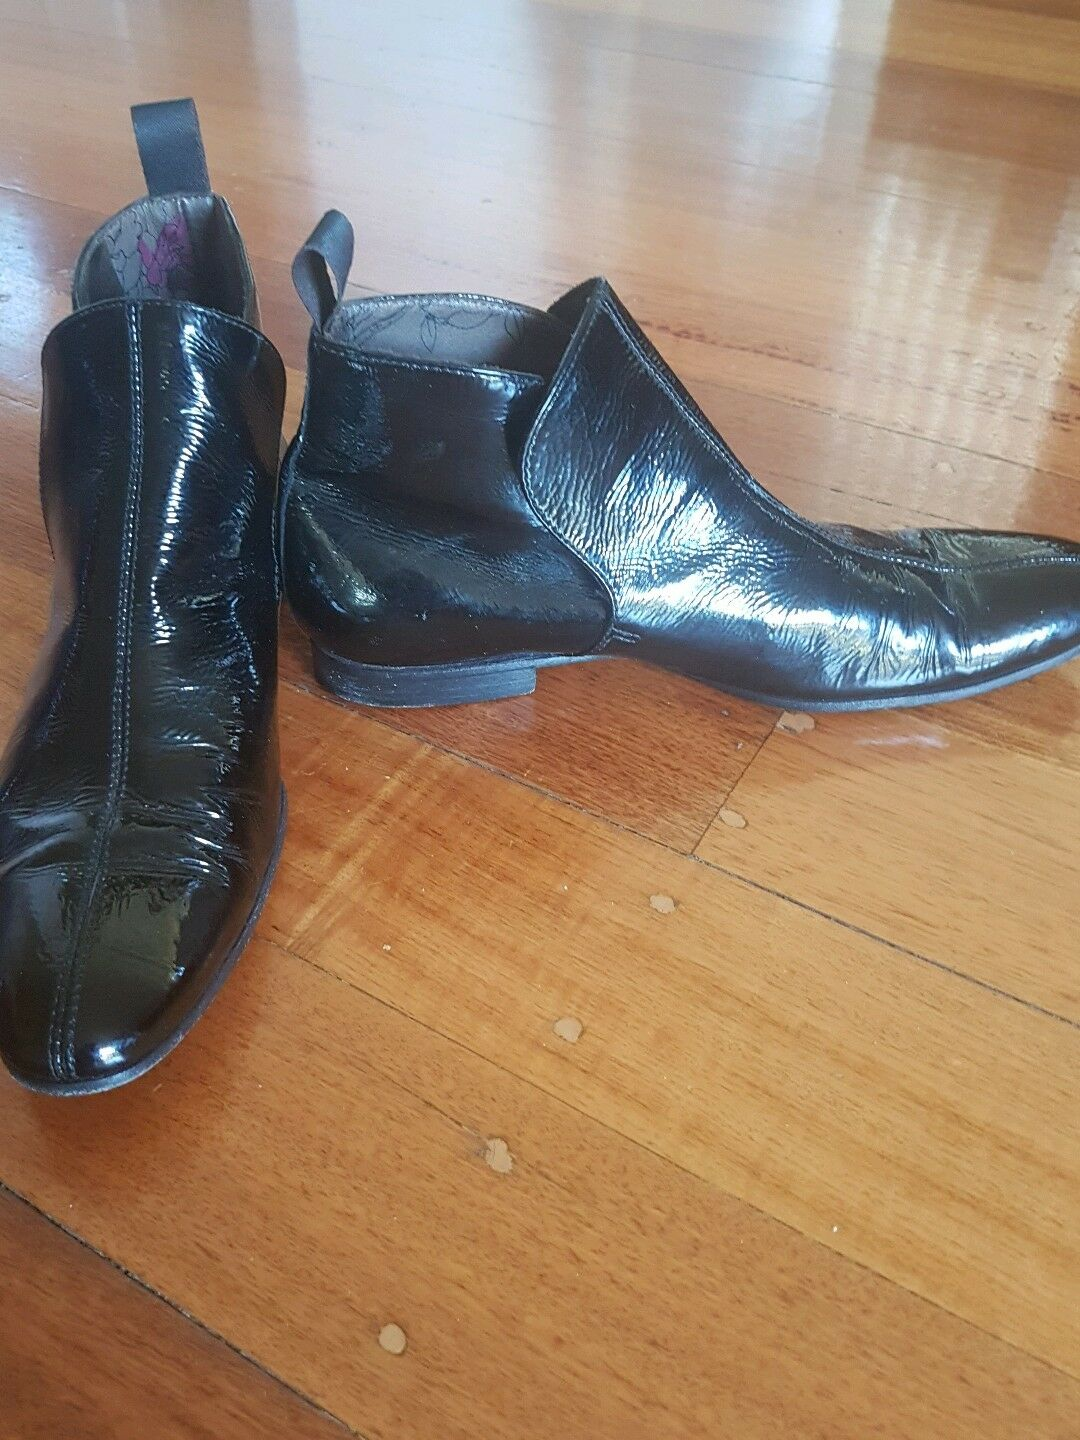 Paul Smith uomo only scarpe Dimensione 38 1 2  hand crafted made in